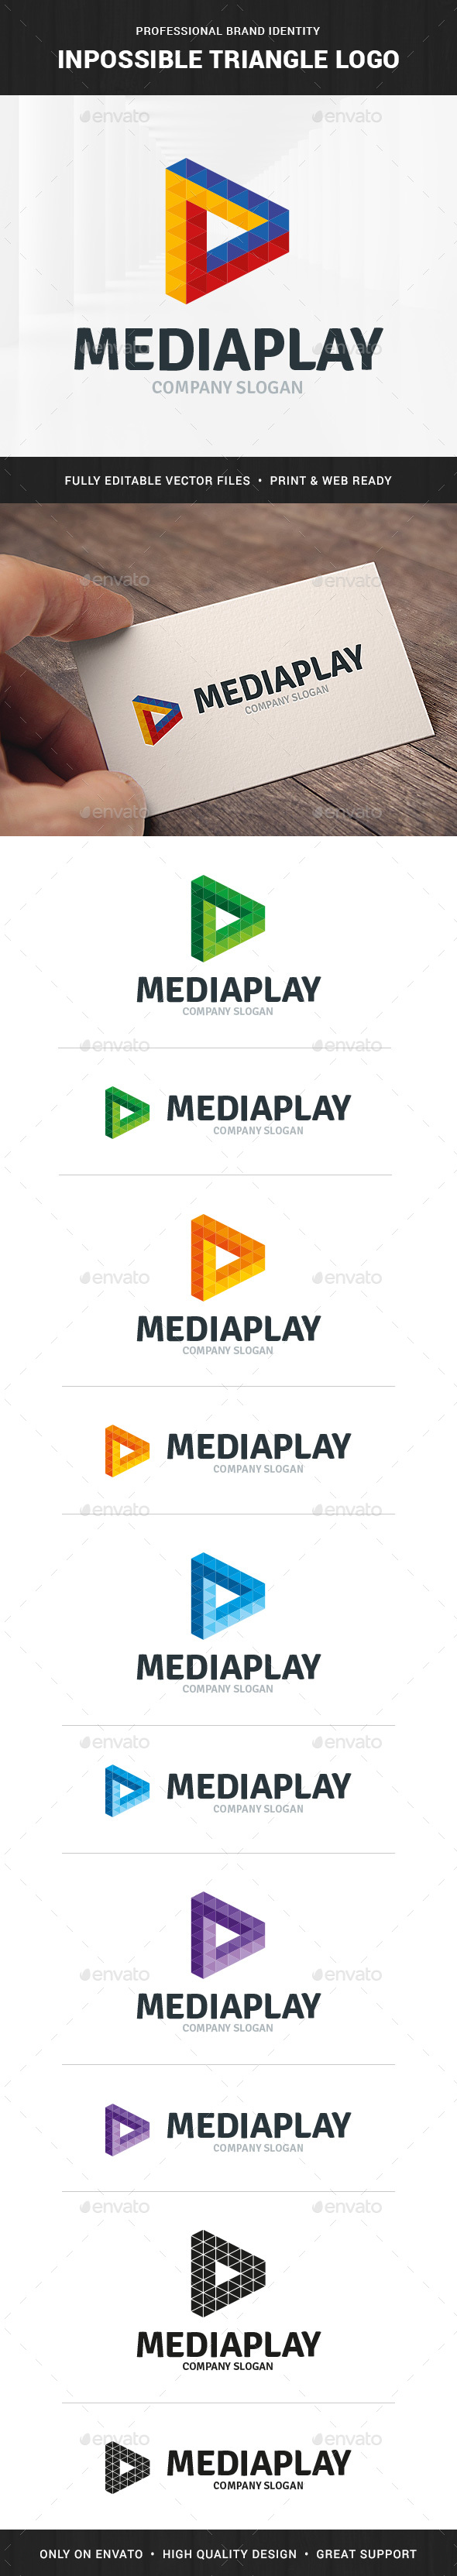 Impossible Triangle Logo Template